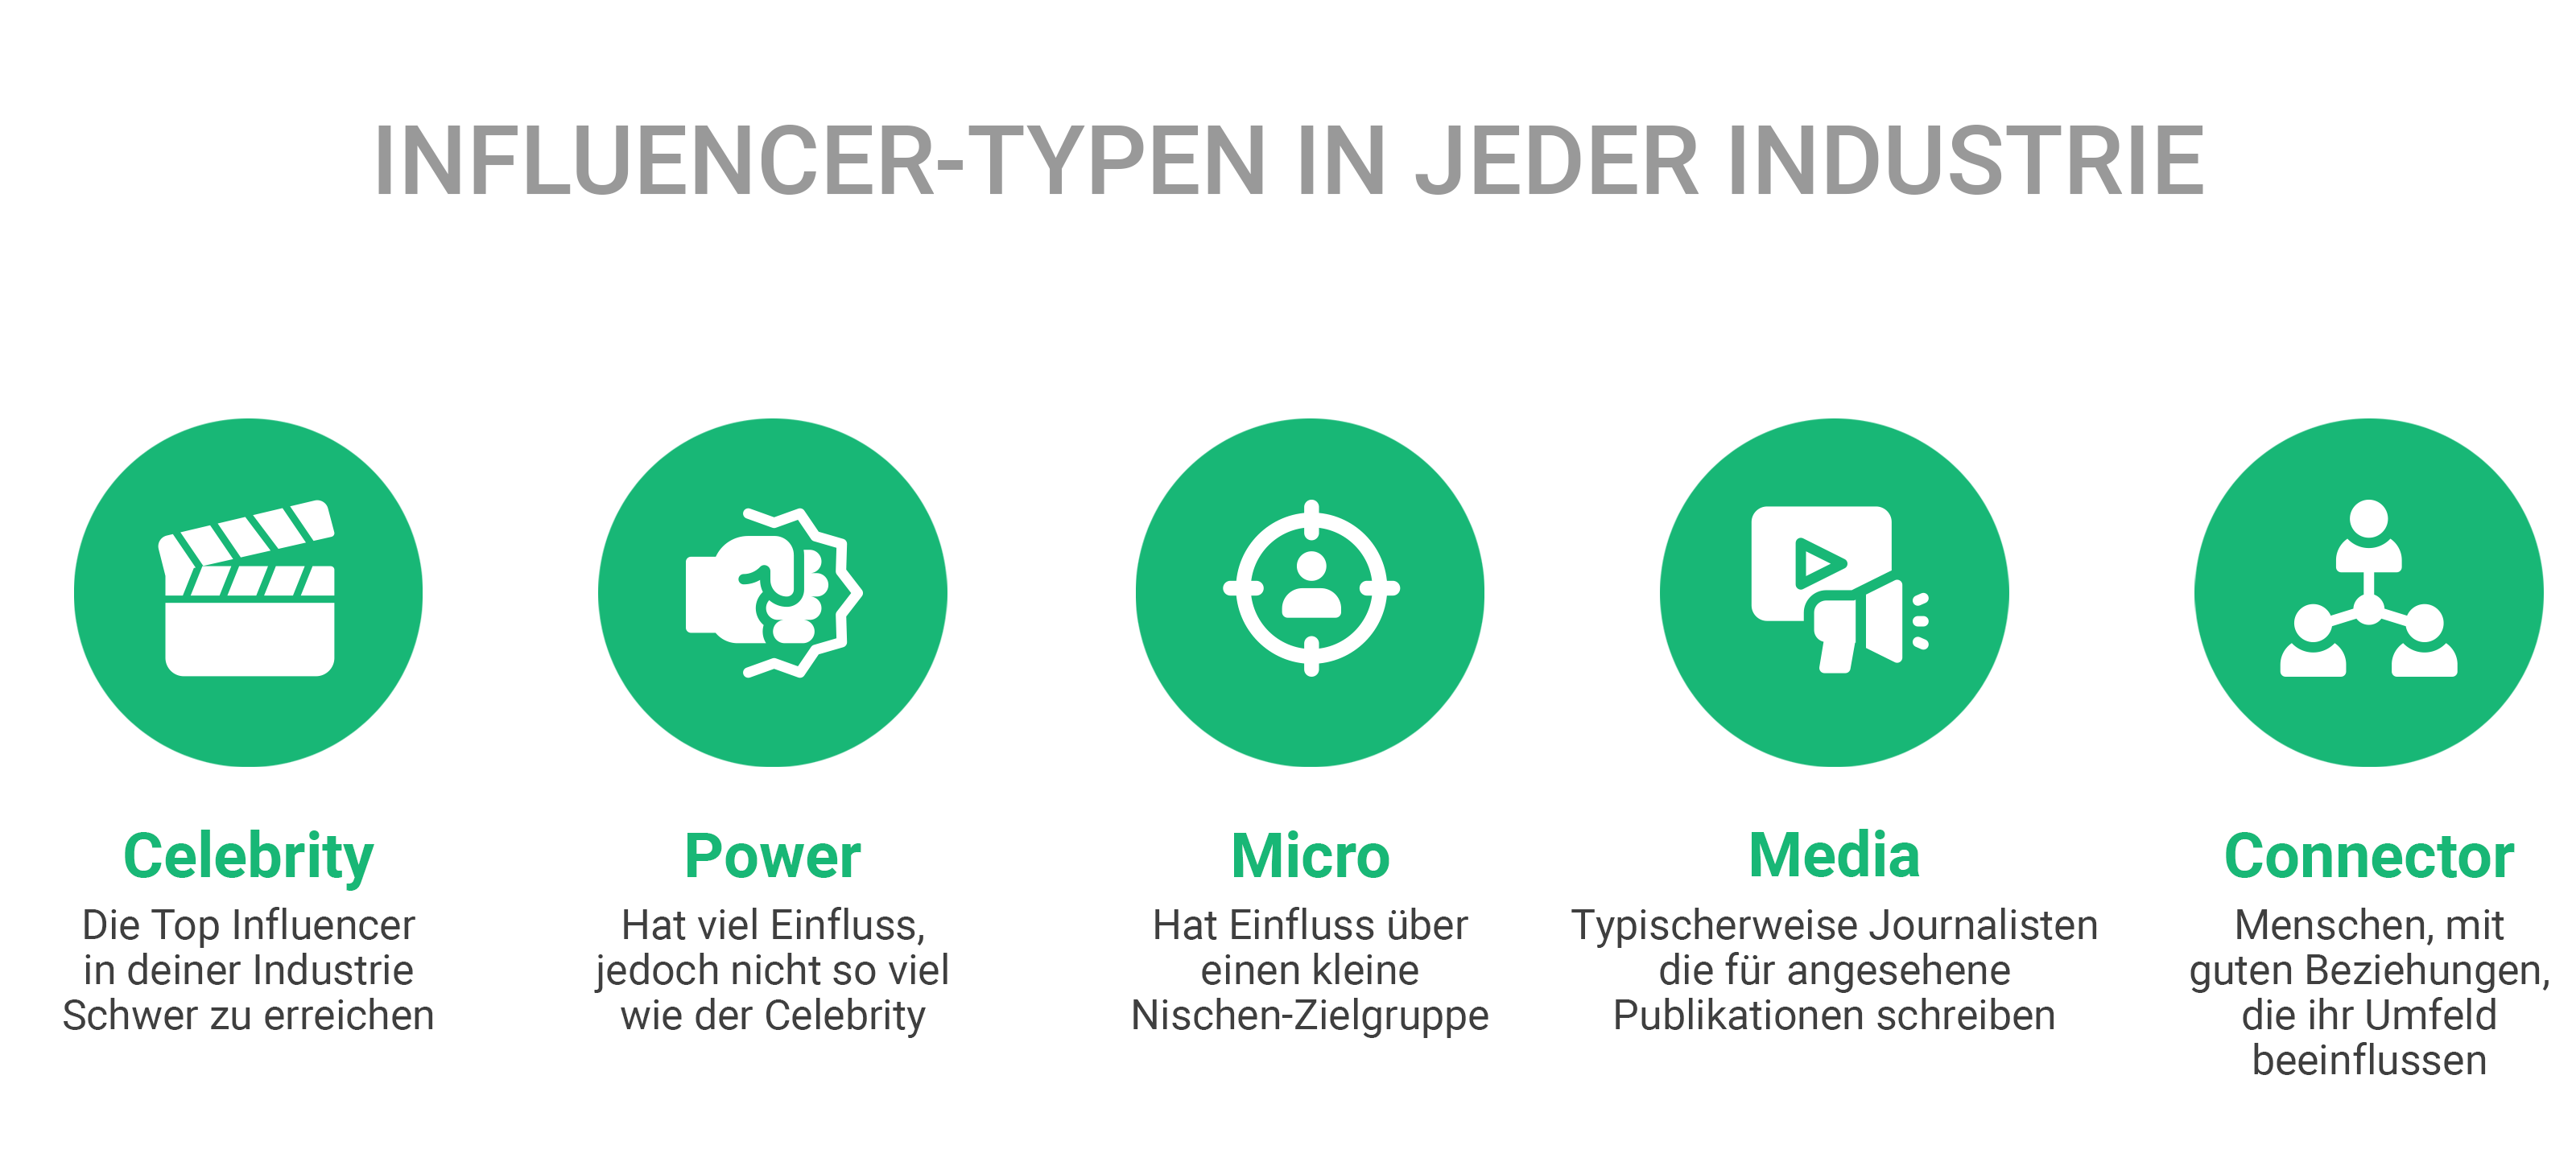 Storyclash Influencer Types